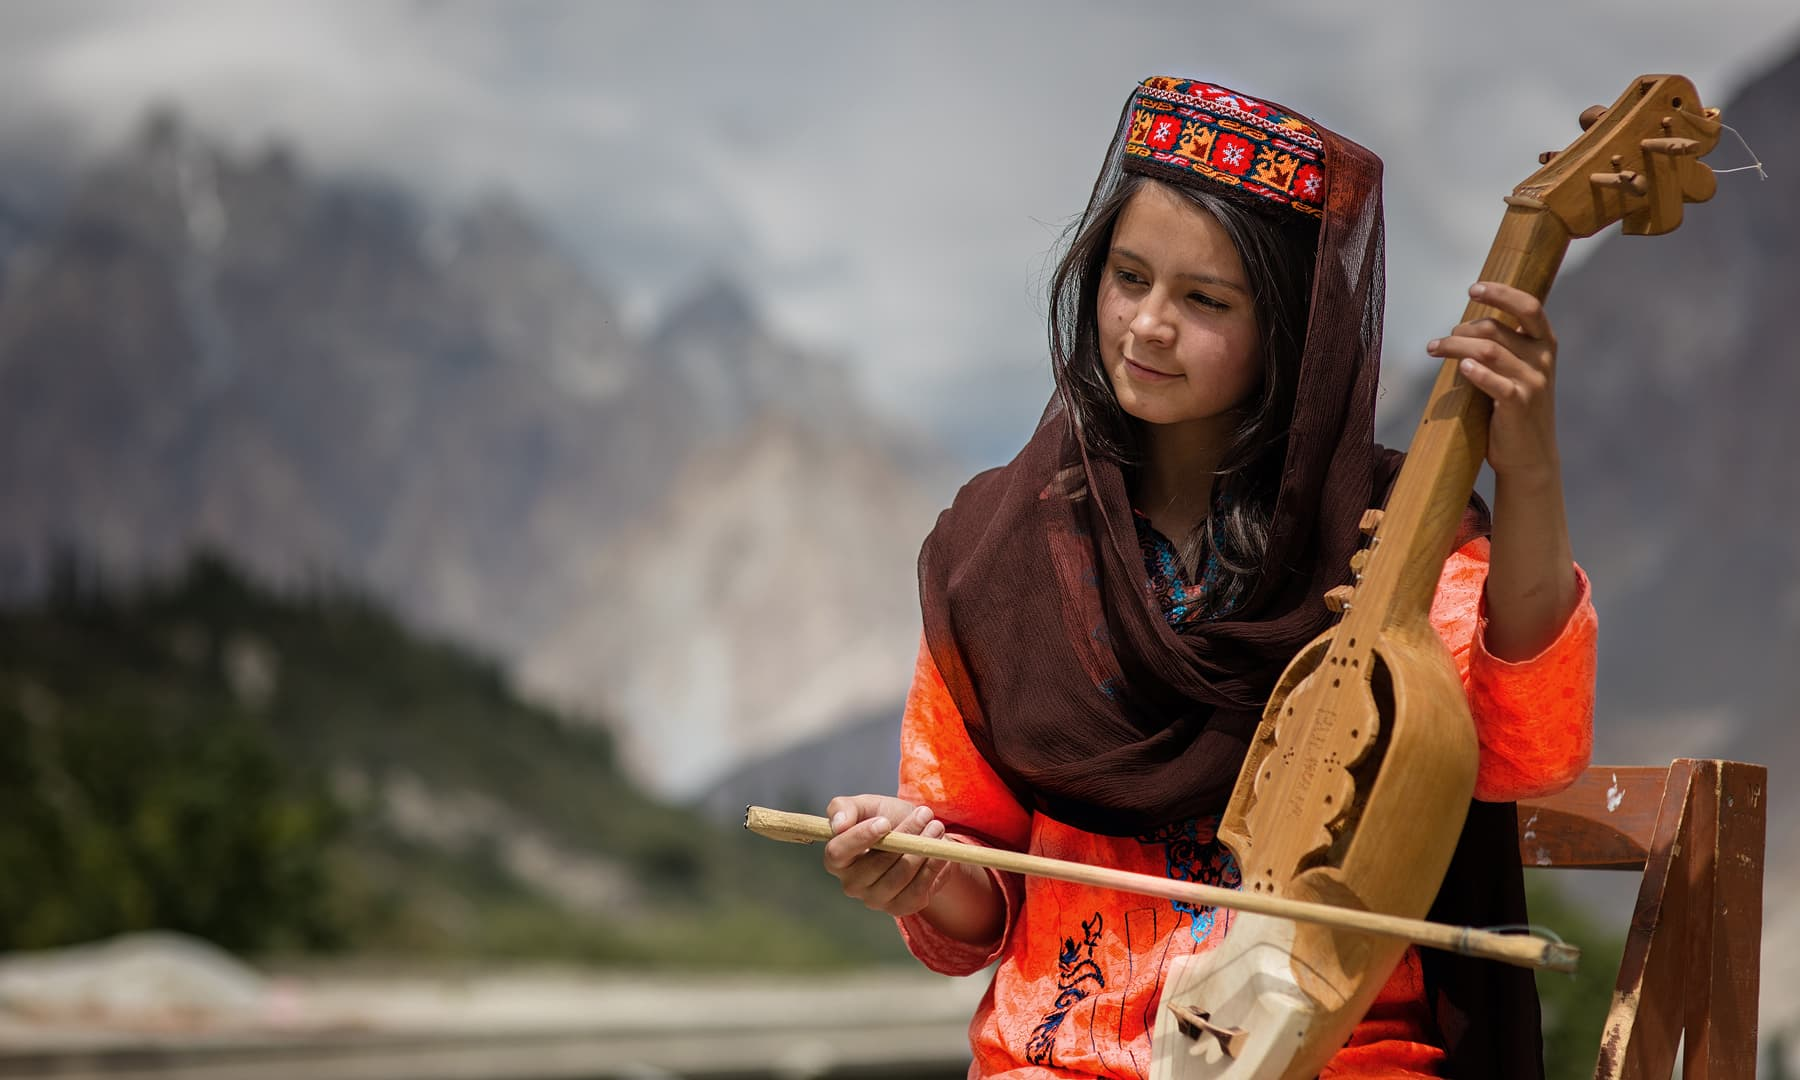 A young girl plays the rabab.